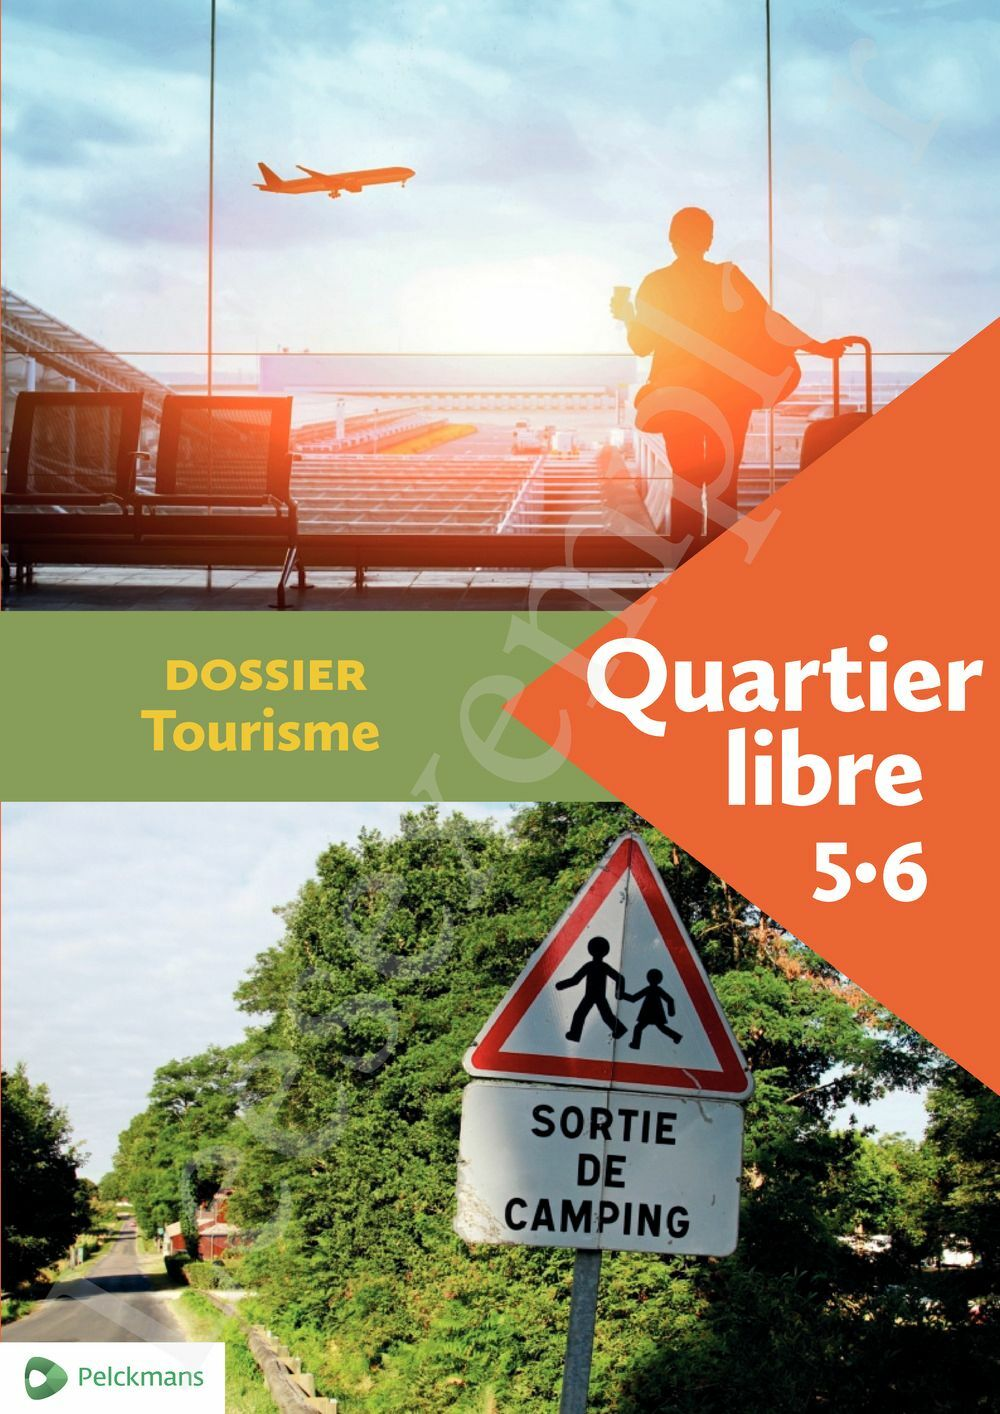 Preview: Quartier libre 5 / 6 Dossier Tourisme